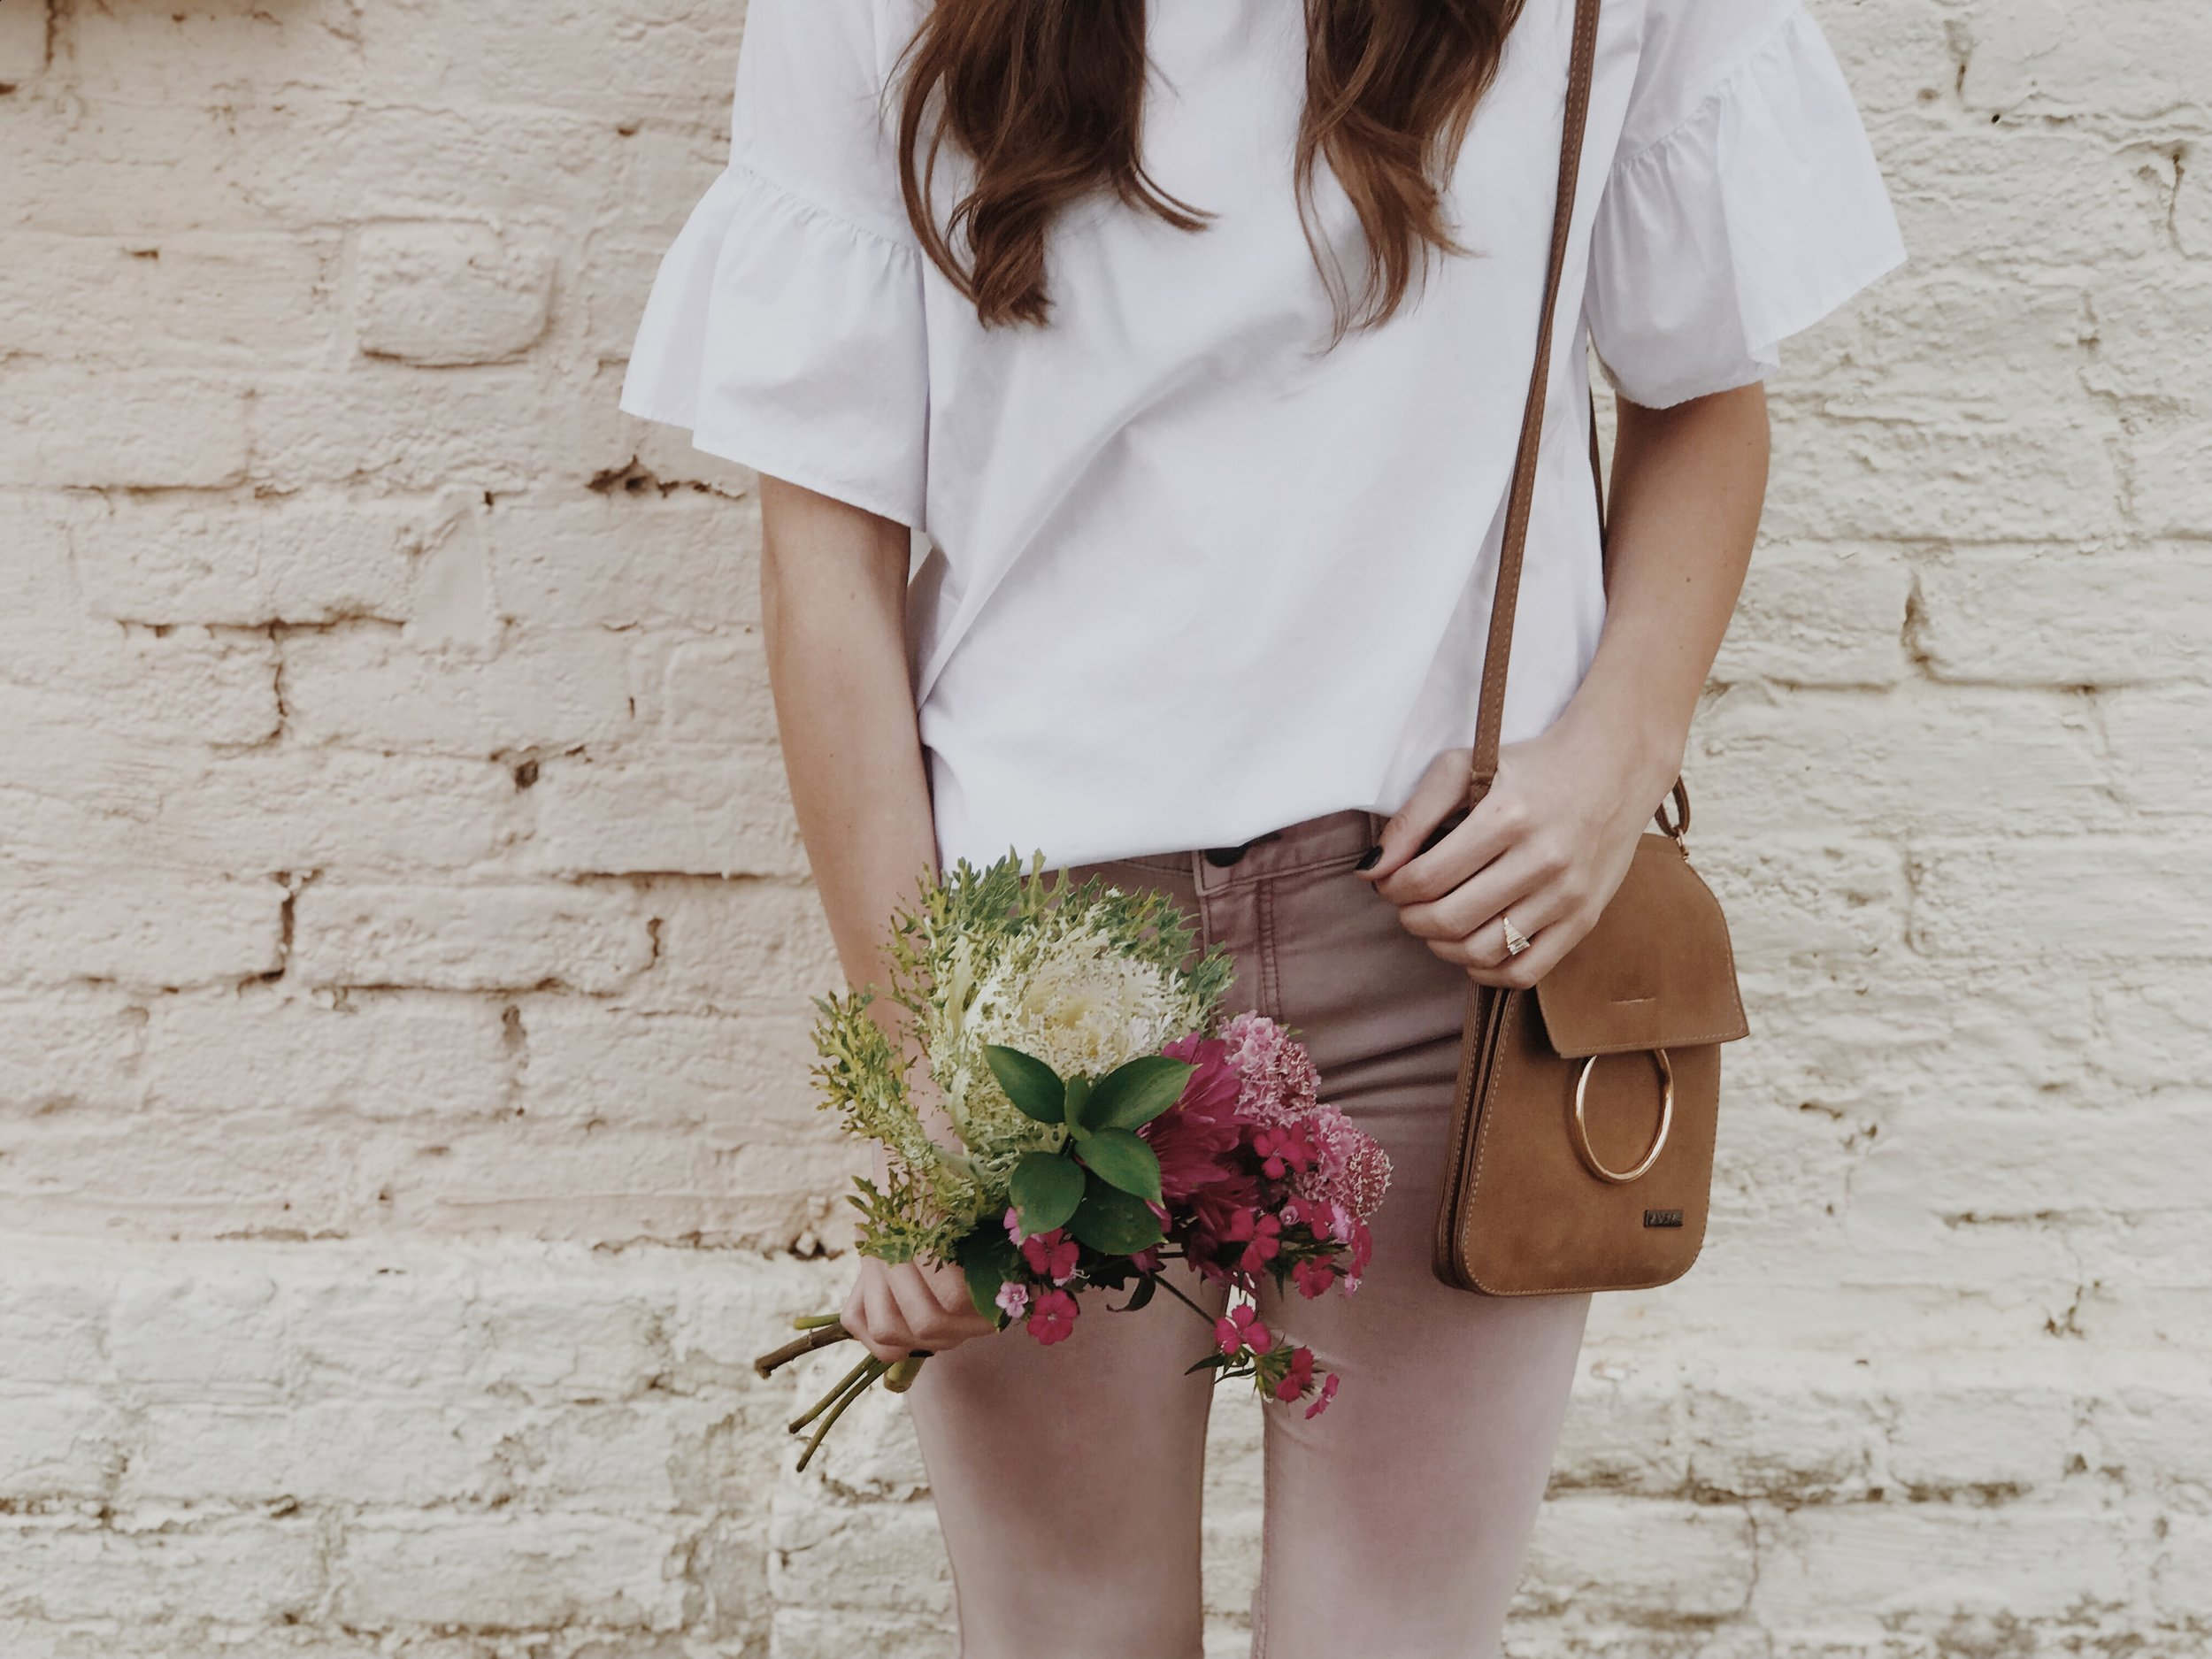 Soft & sweet  - Looking for a laid back look? Simply pair a simple clean top with a pretty light colored pant and minimal accessories for a casual day date.